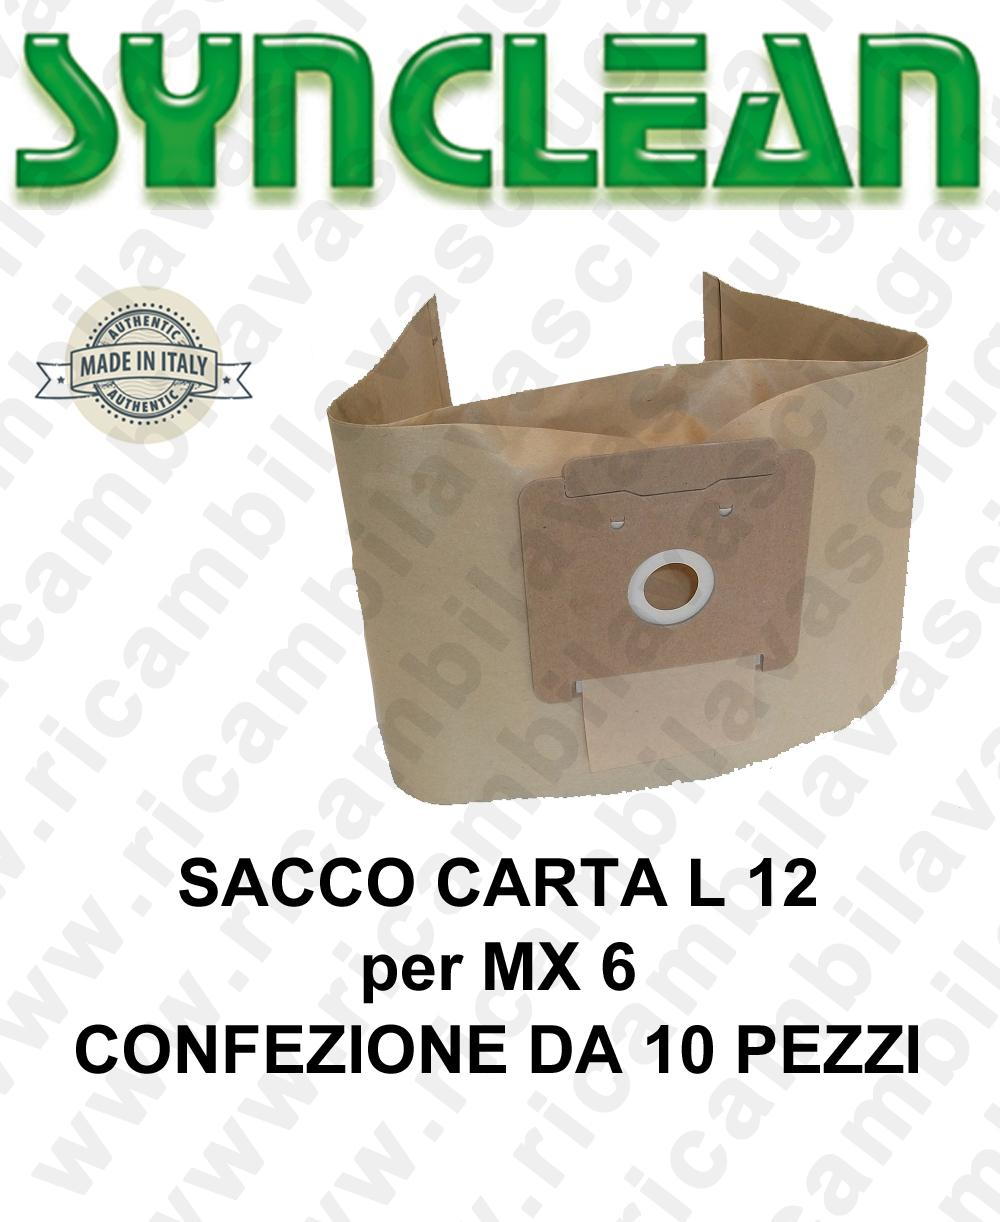 Sacco carta litres 12 for MAXICLEAN mod. MX 6 10 pieces for box